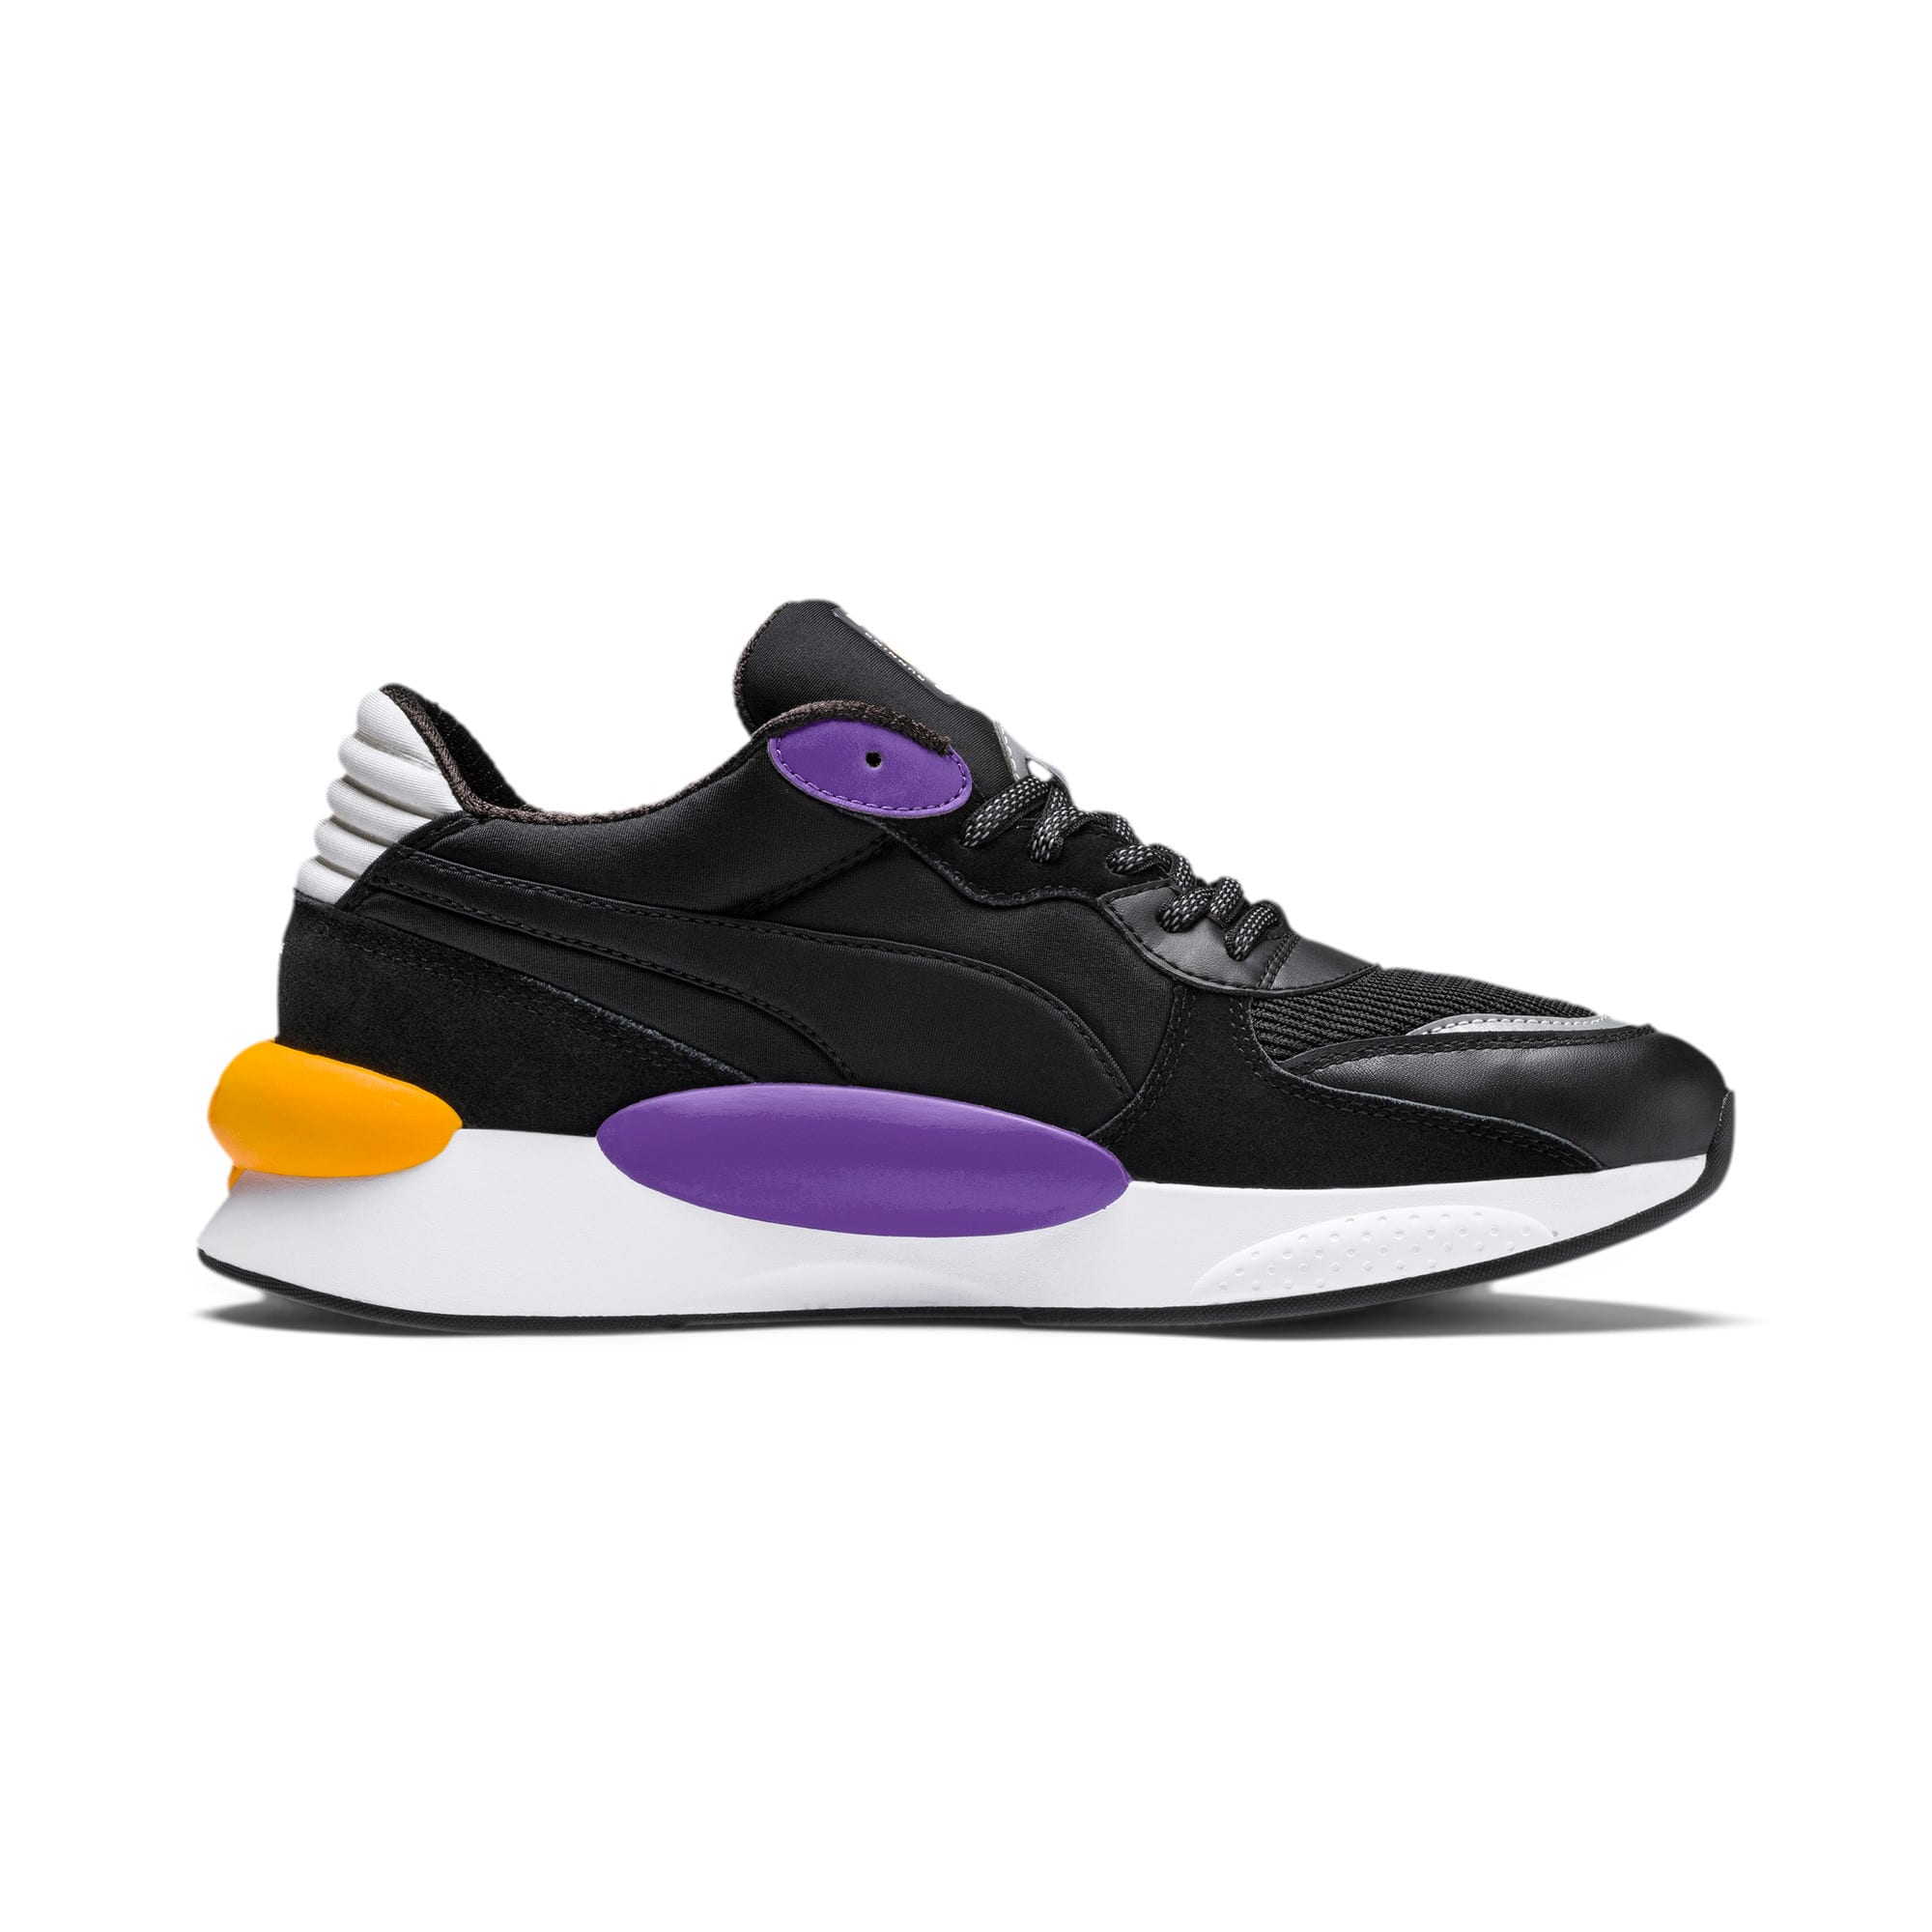 Imagen en miniatura 6 de Zapatillas RS 9.8 Gravity, Puma Black-Purple Glimmer, mediana